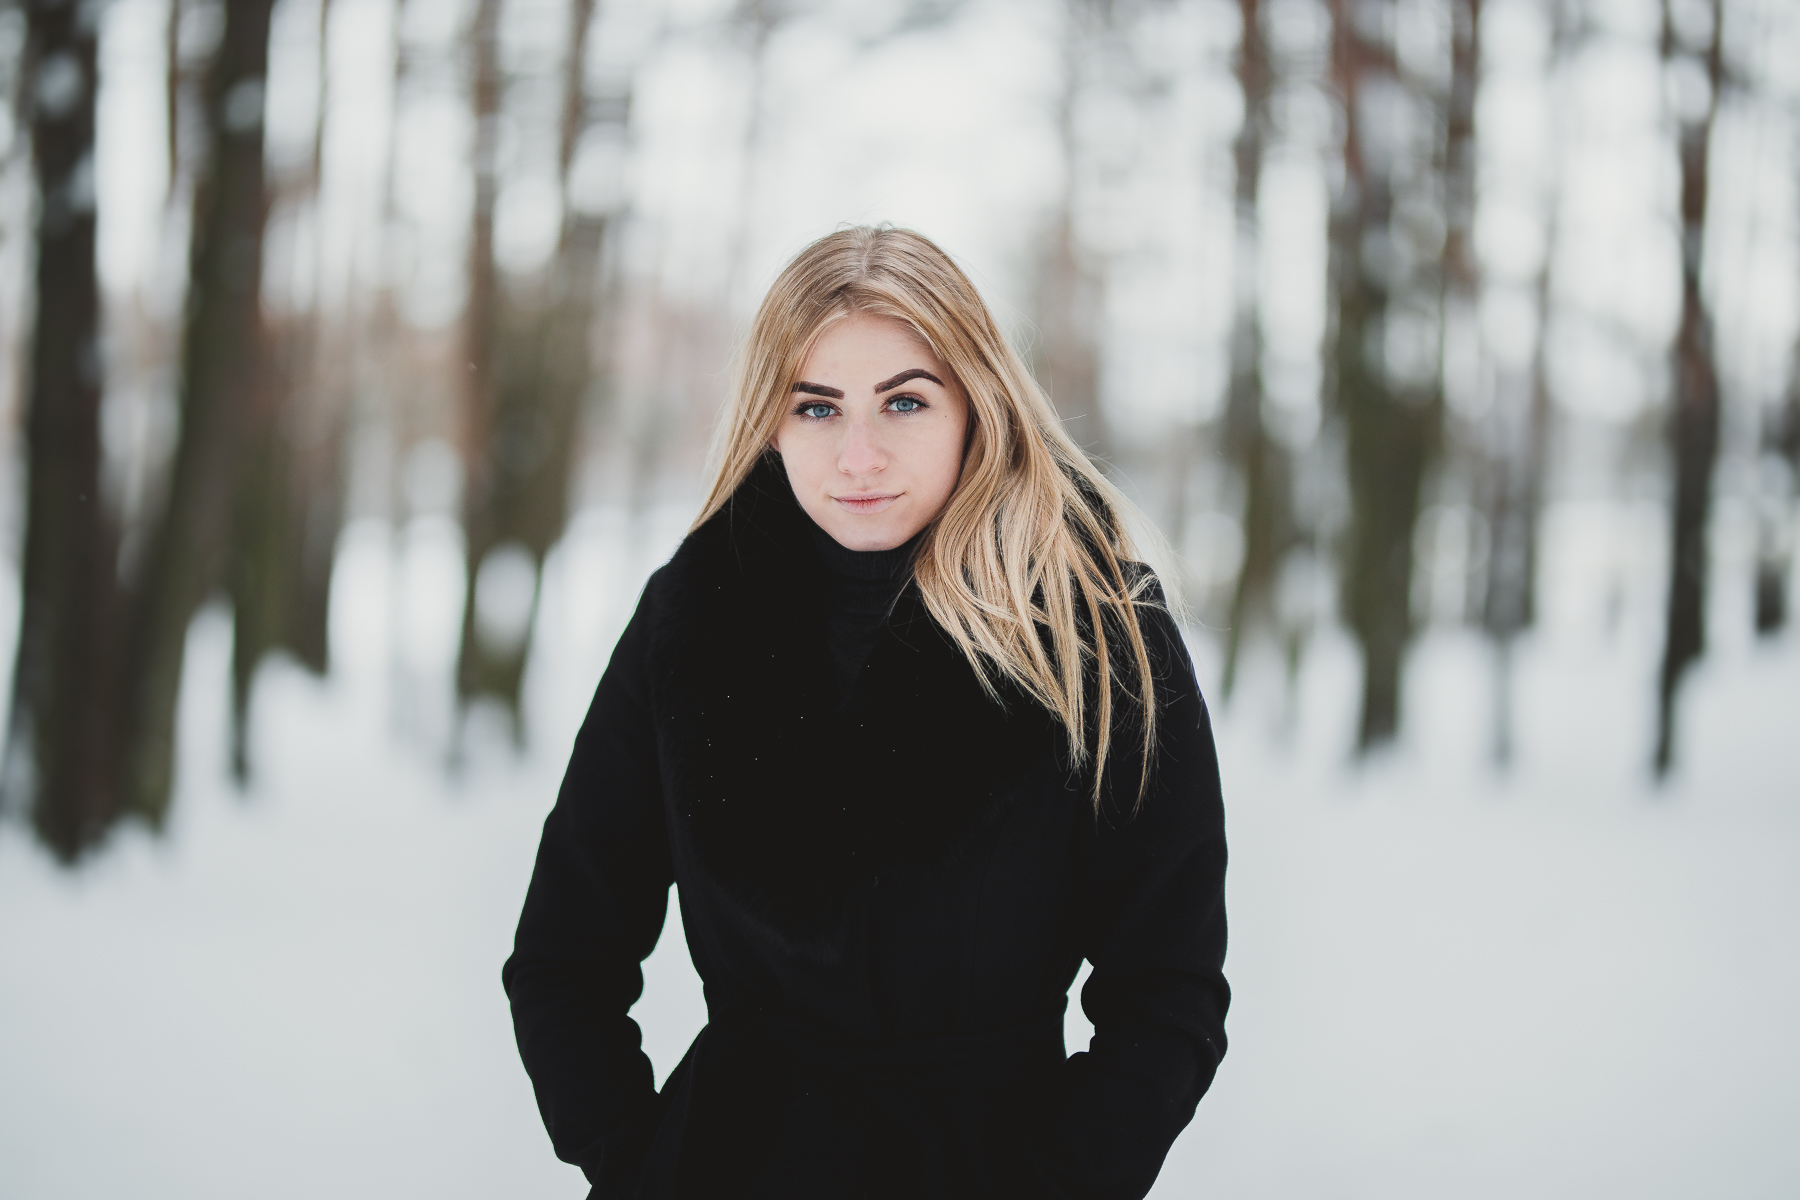 Beautiful Girl in the Woods, Lithuania